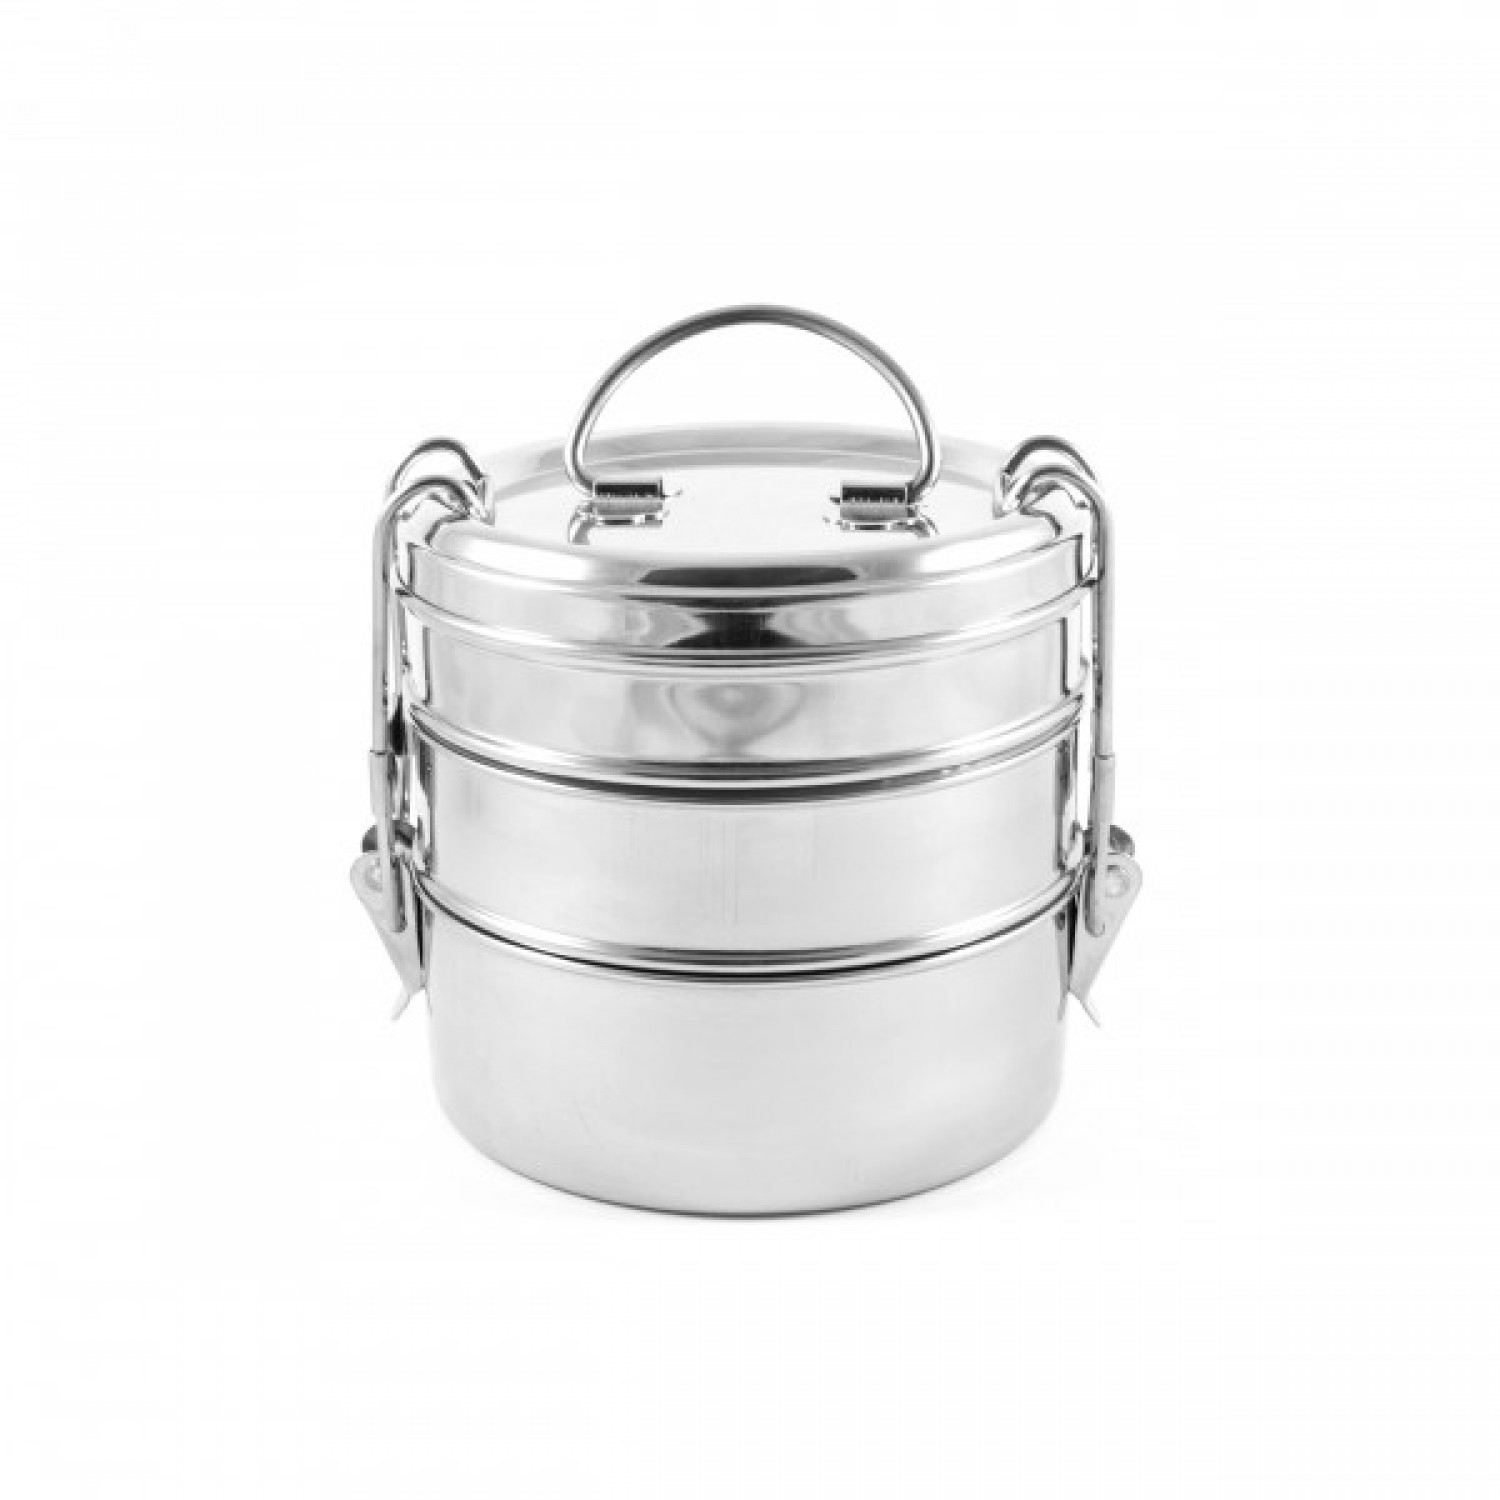 Tiffin Swing - Stainless Steel Lunch Pail | Eco Brotbox